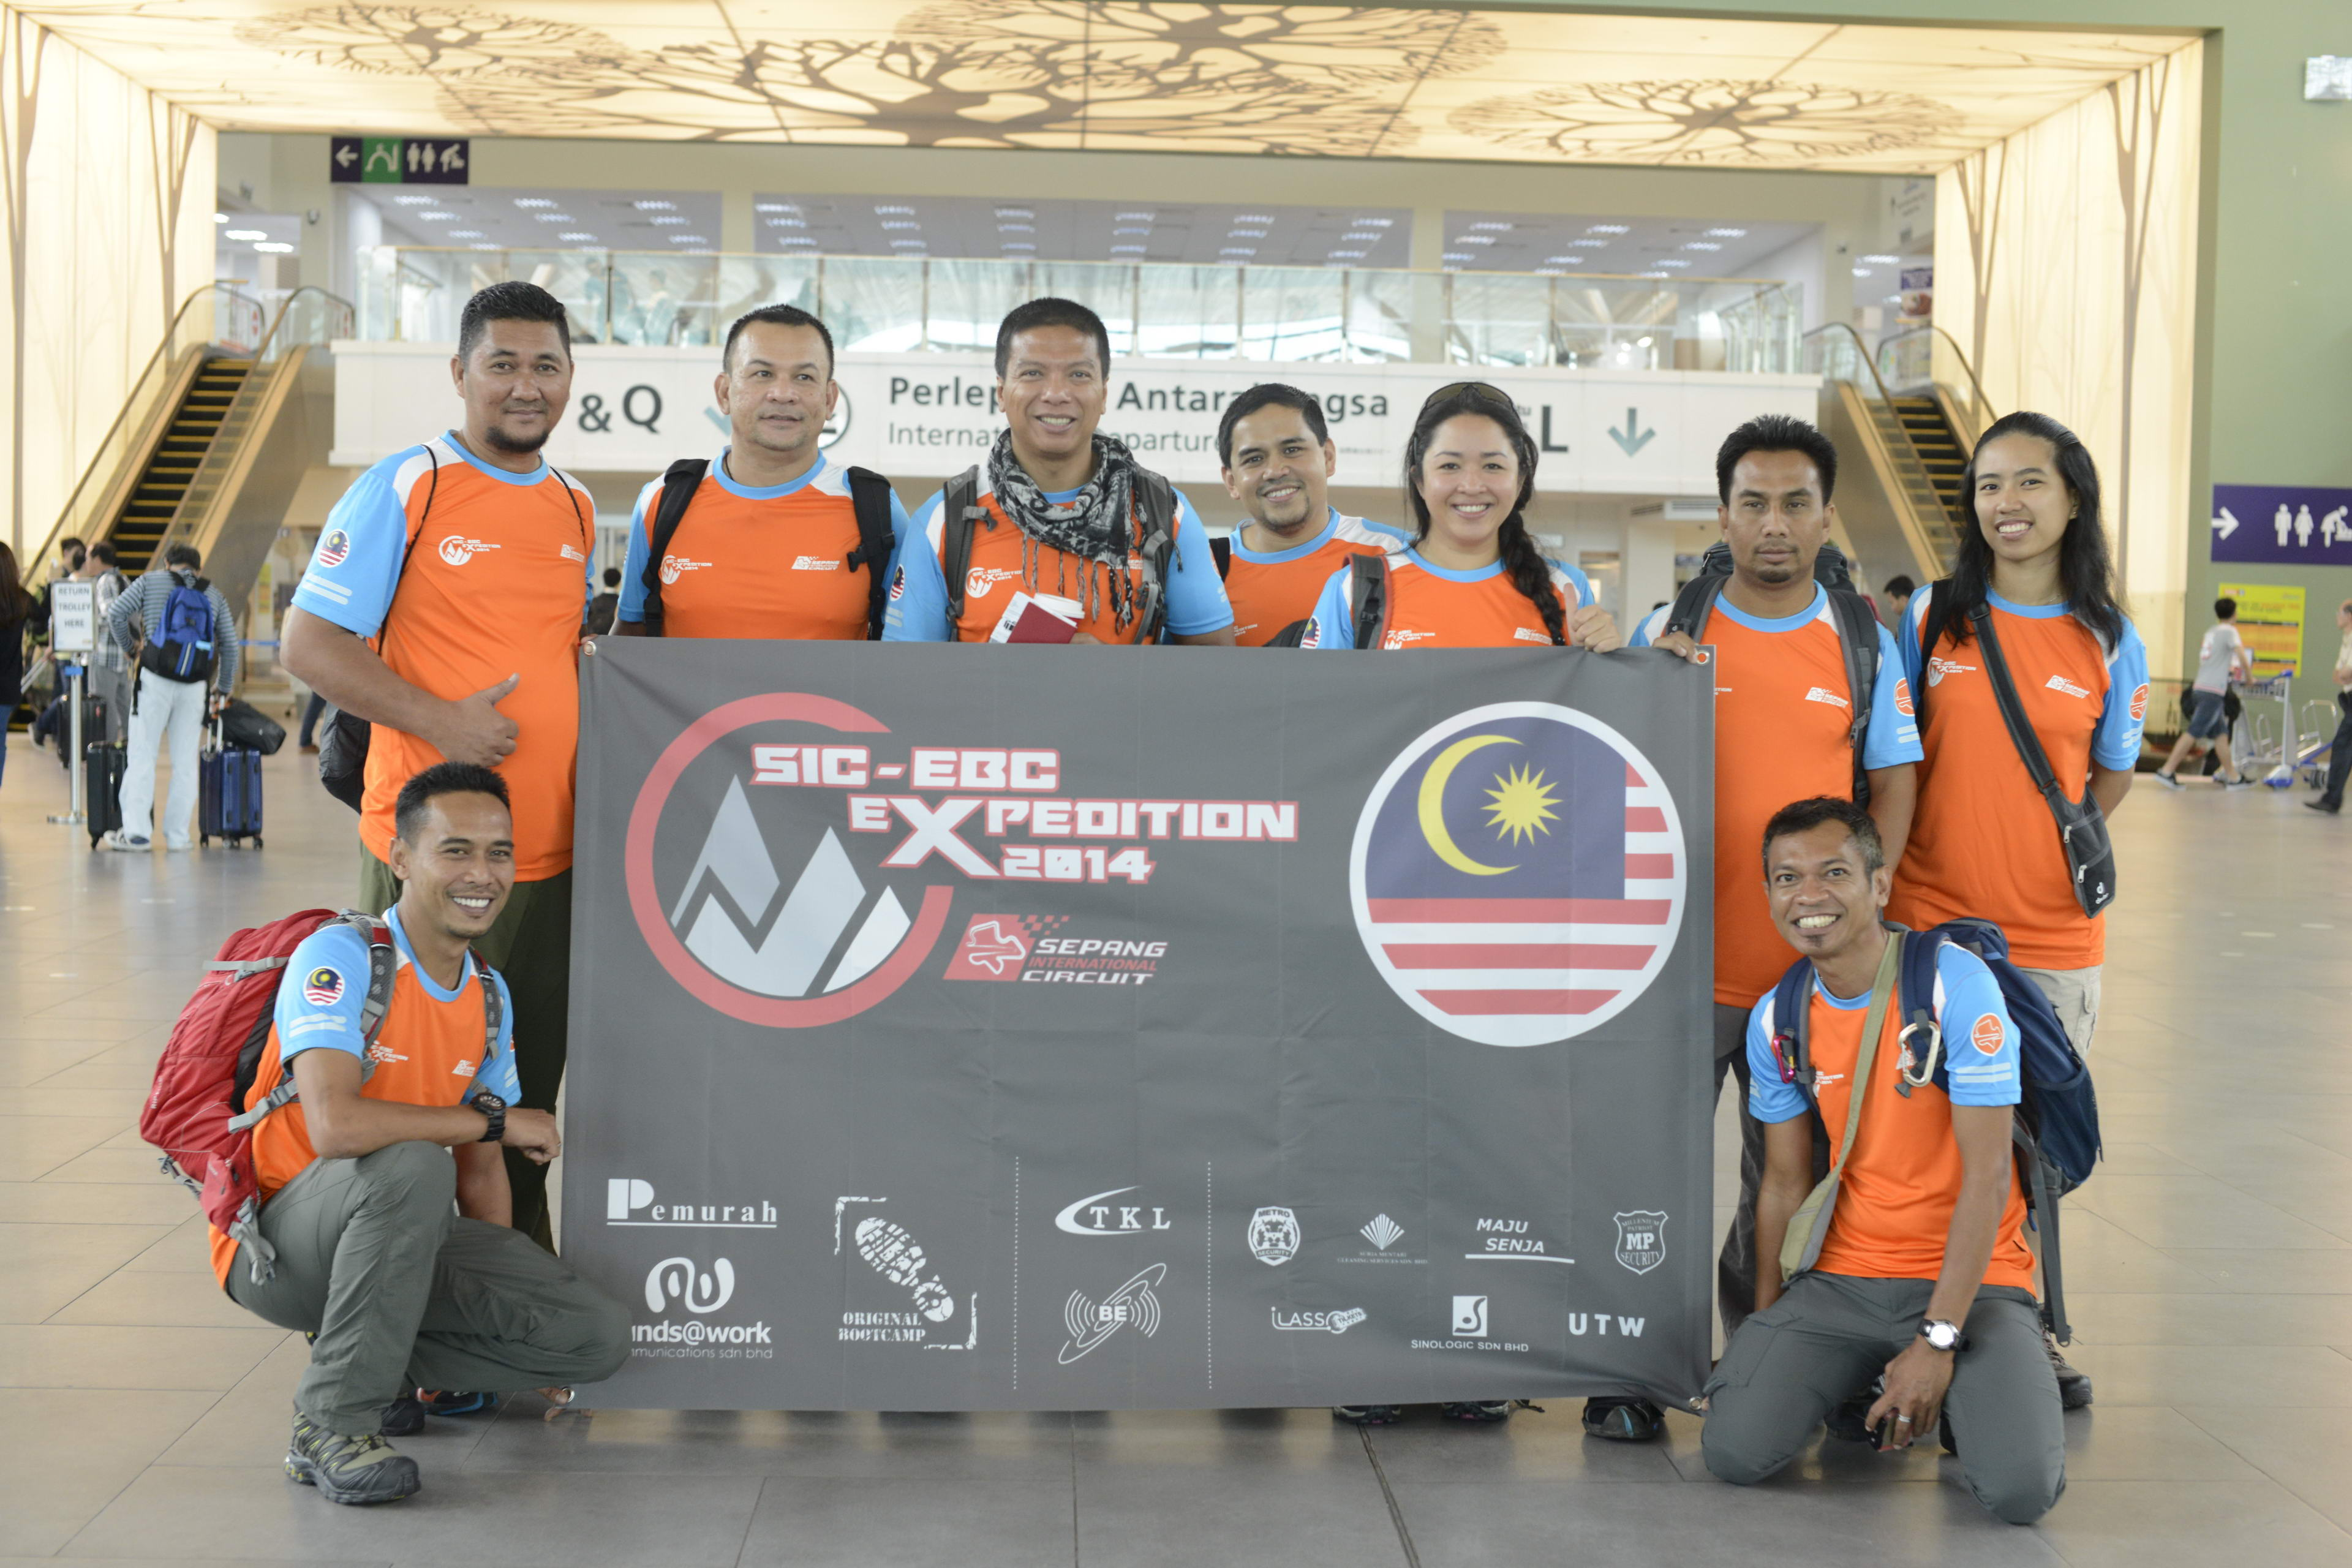 The Sepang International Circuit in high spirits as they gather at KLIA before flying off for their special expedition to the Everest Base Camp.